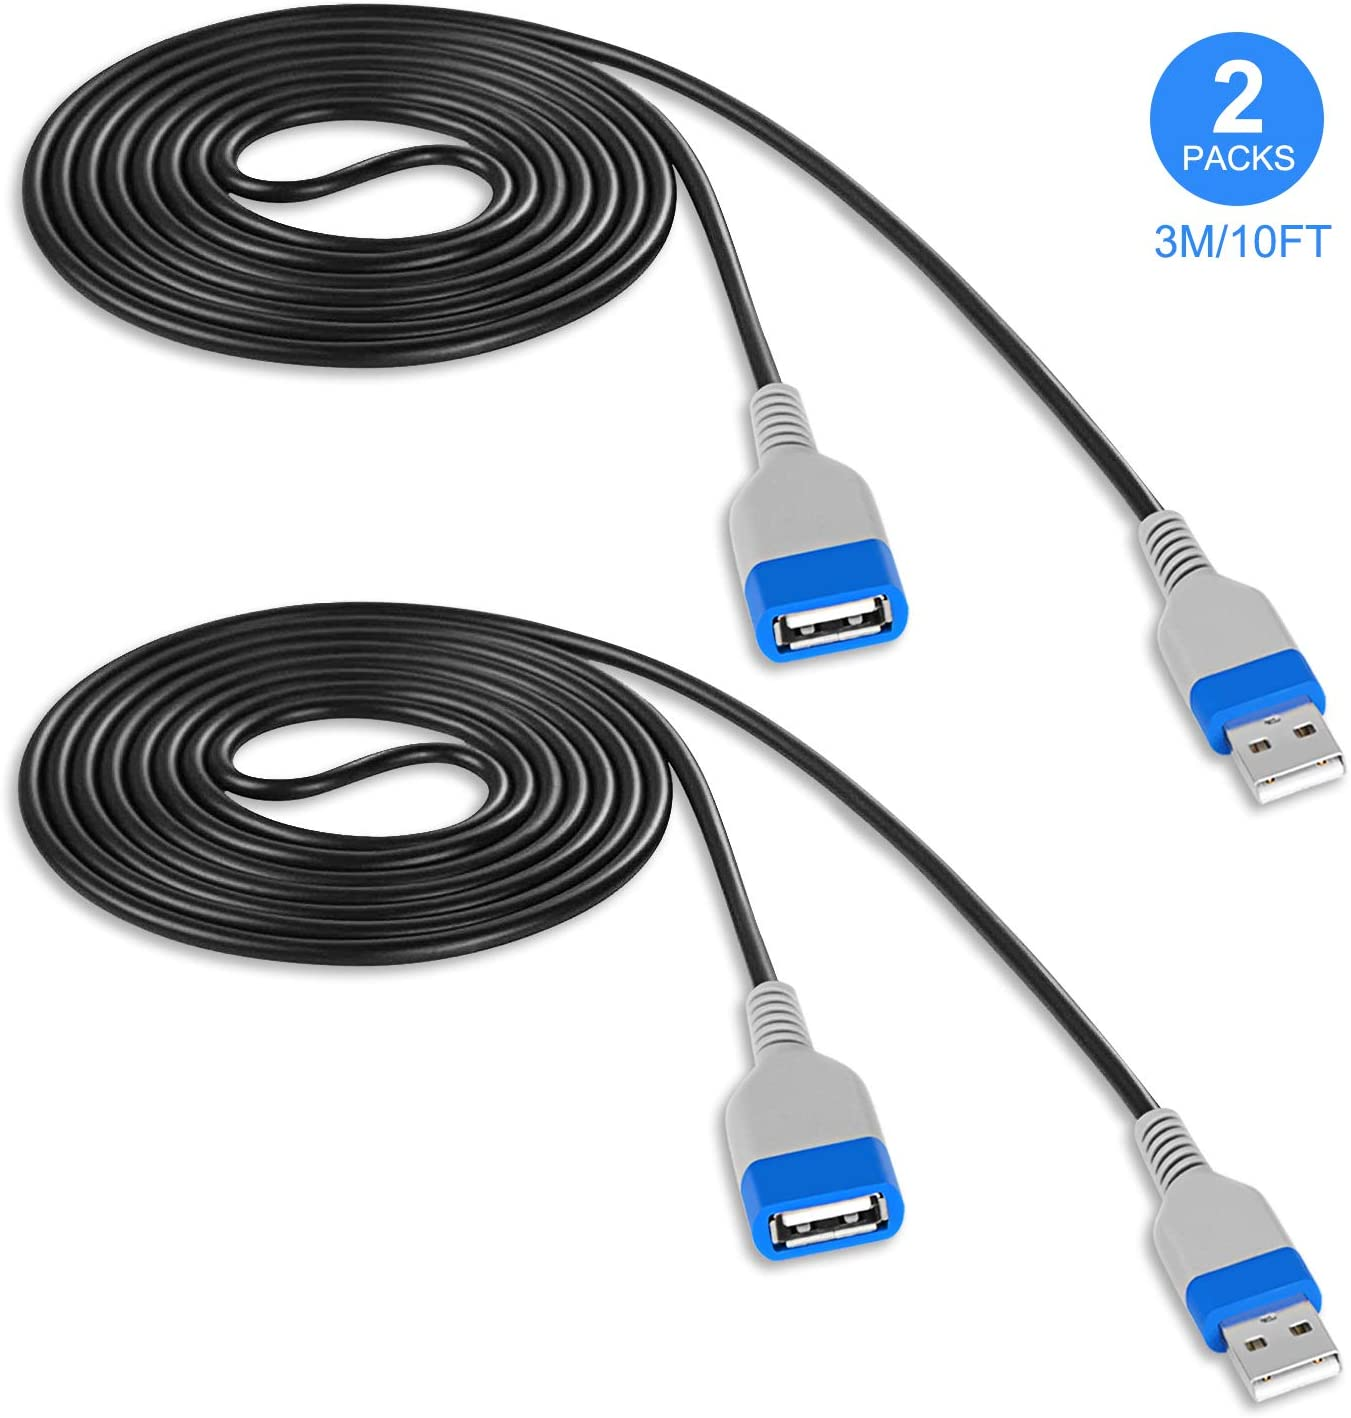 Keten Extension Cable for Playstation Classic Console Controller, Extra Signal Cord for Sony PS Classic Mini Edition – 2018 (3M/10 ft -2 Pcs)